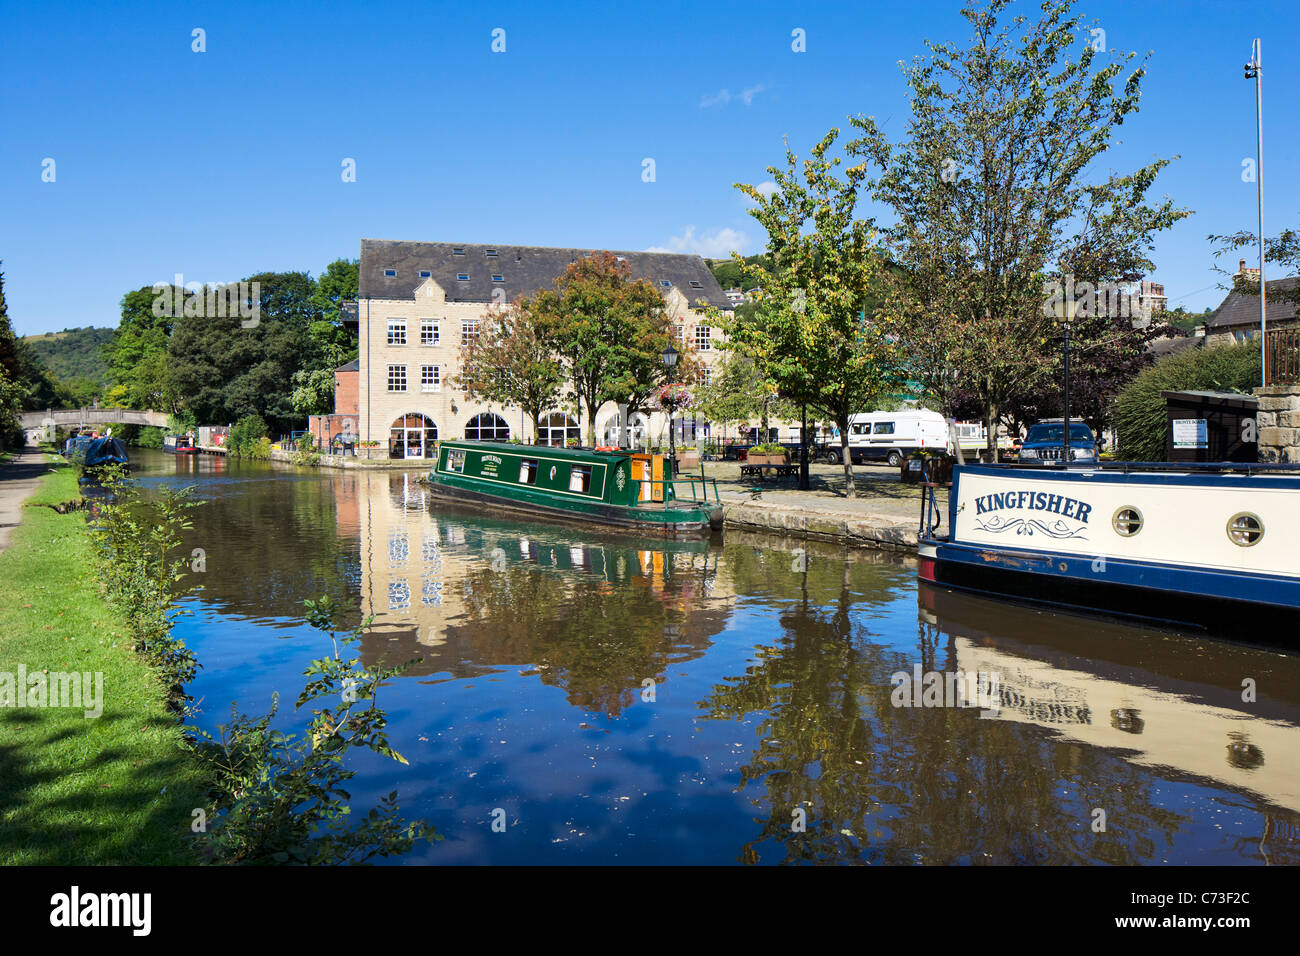 Narrowboats on Rochdale Canal, Hebden Bridge, Calder Valley, West Yorkshire, England, United Kingdom - Stock Image